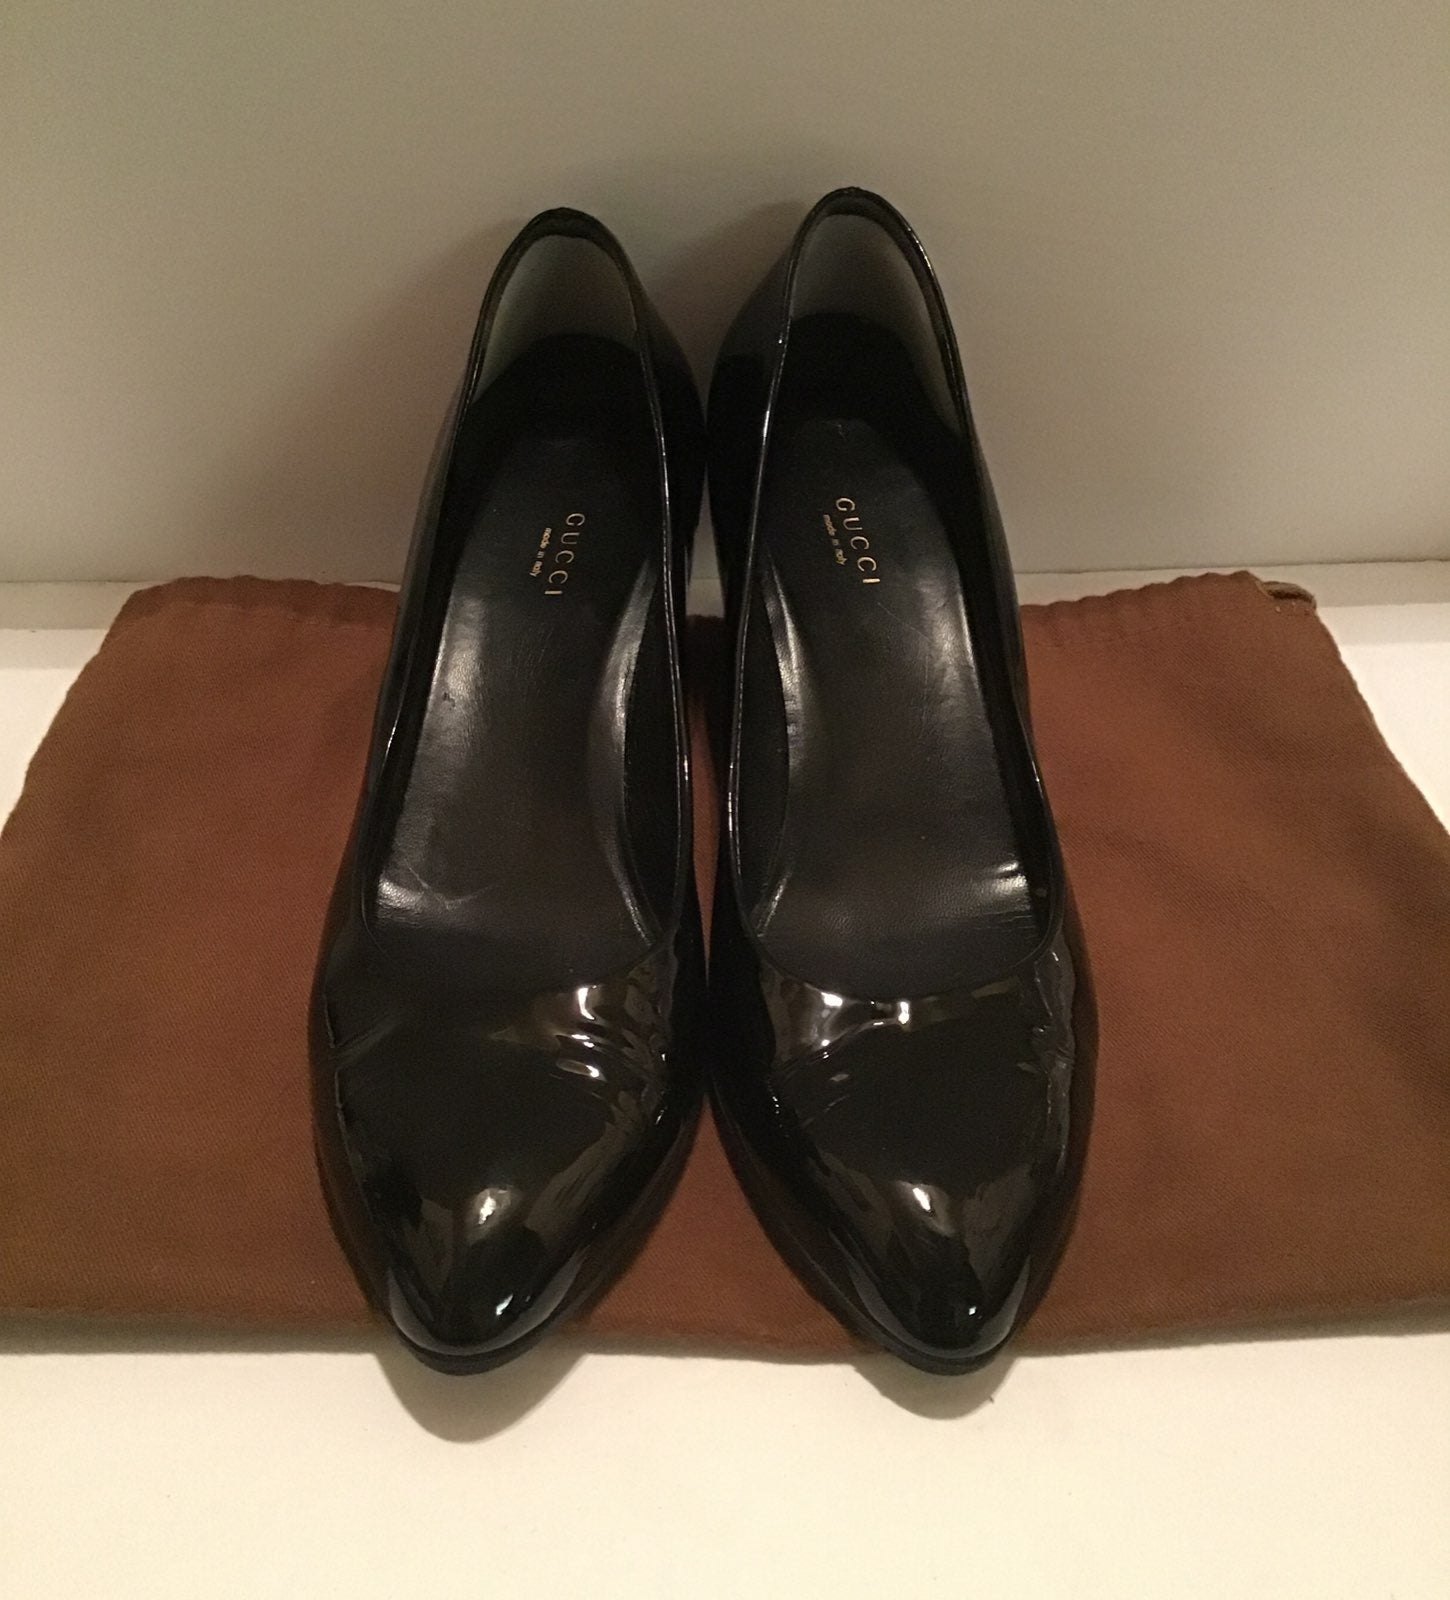 GUCCI AUTHENTIC BLACK PATENT WEDGE